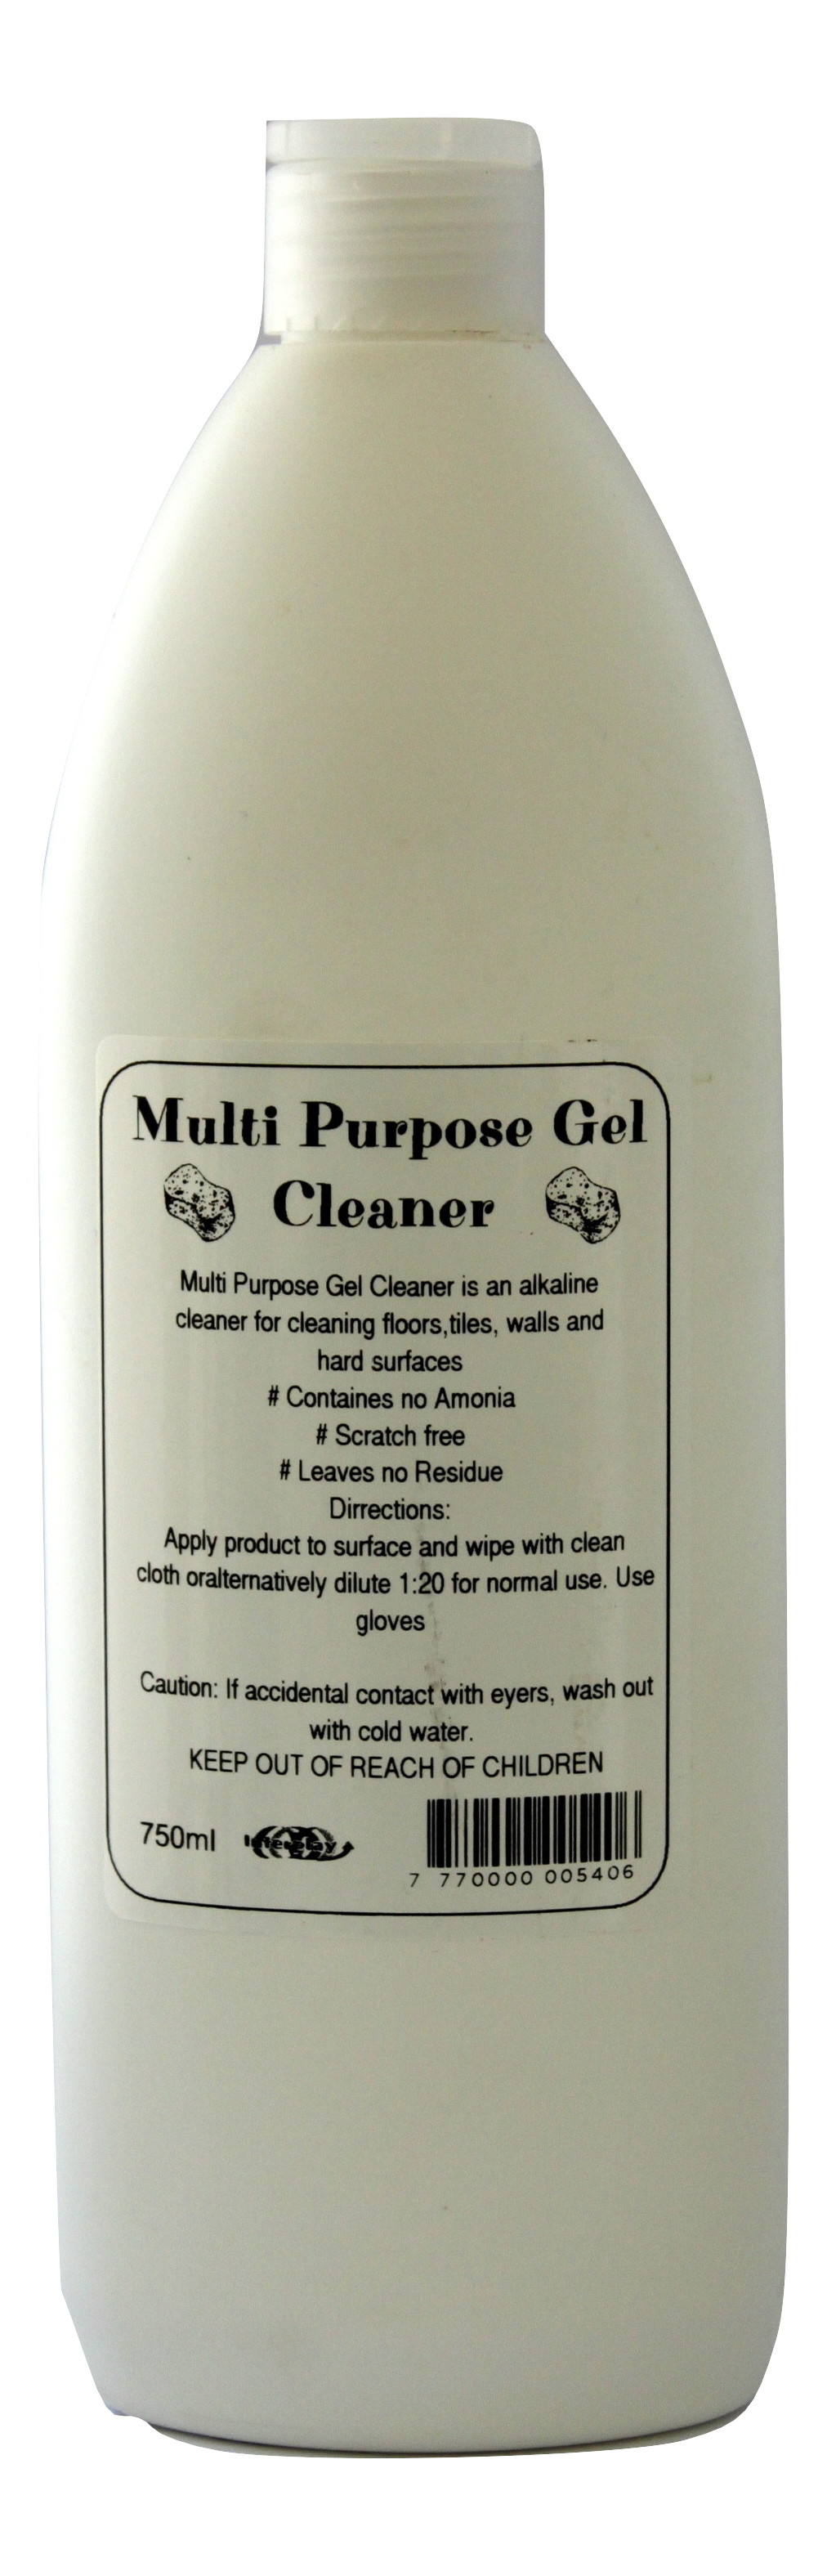 multi-purpouse-gel-cleaner-containes-no-amonia